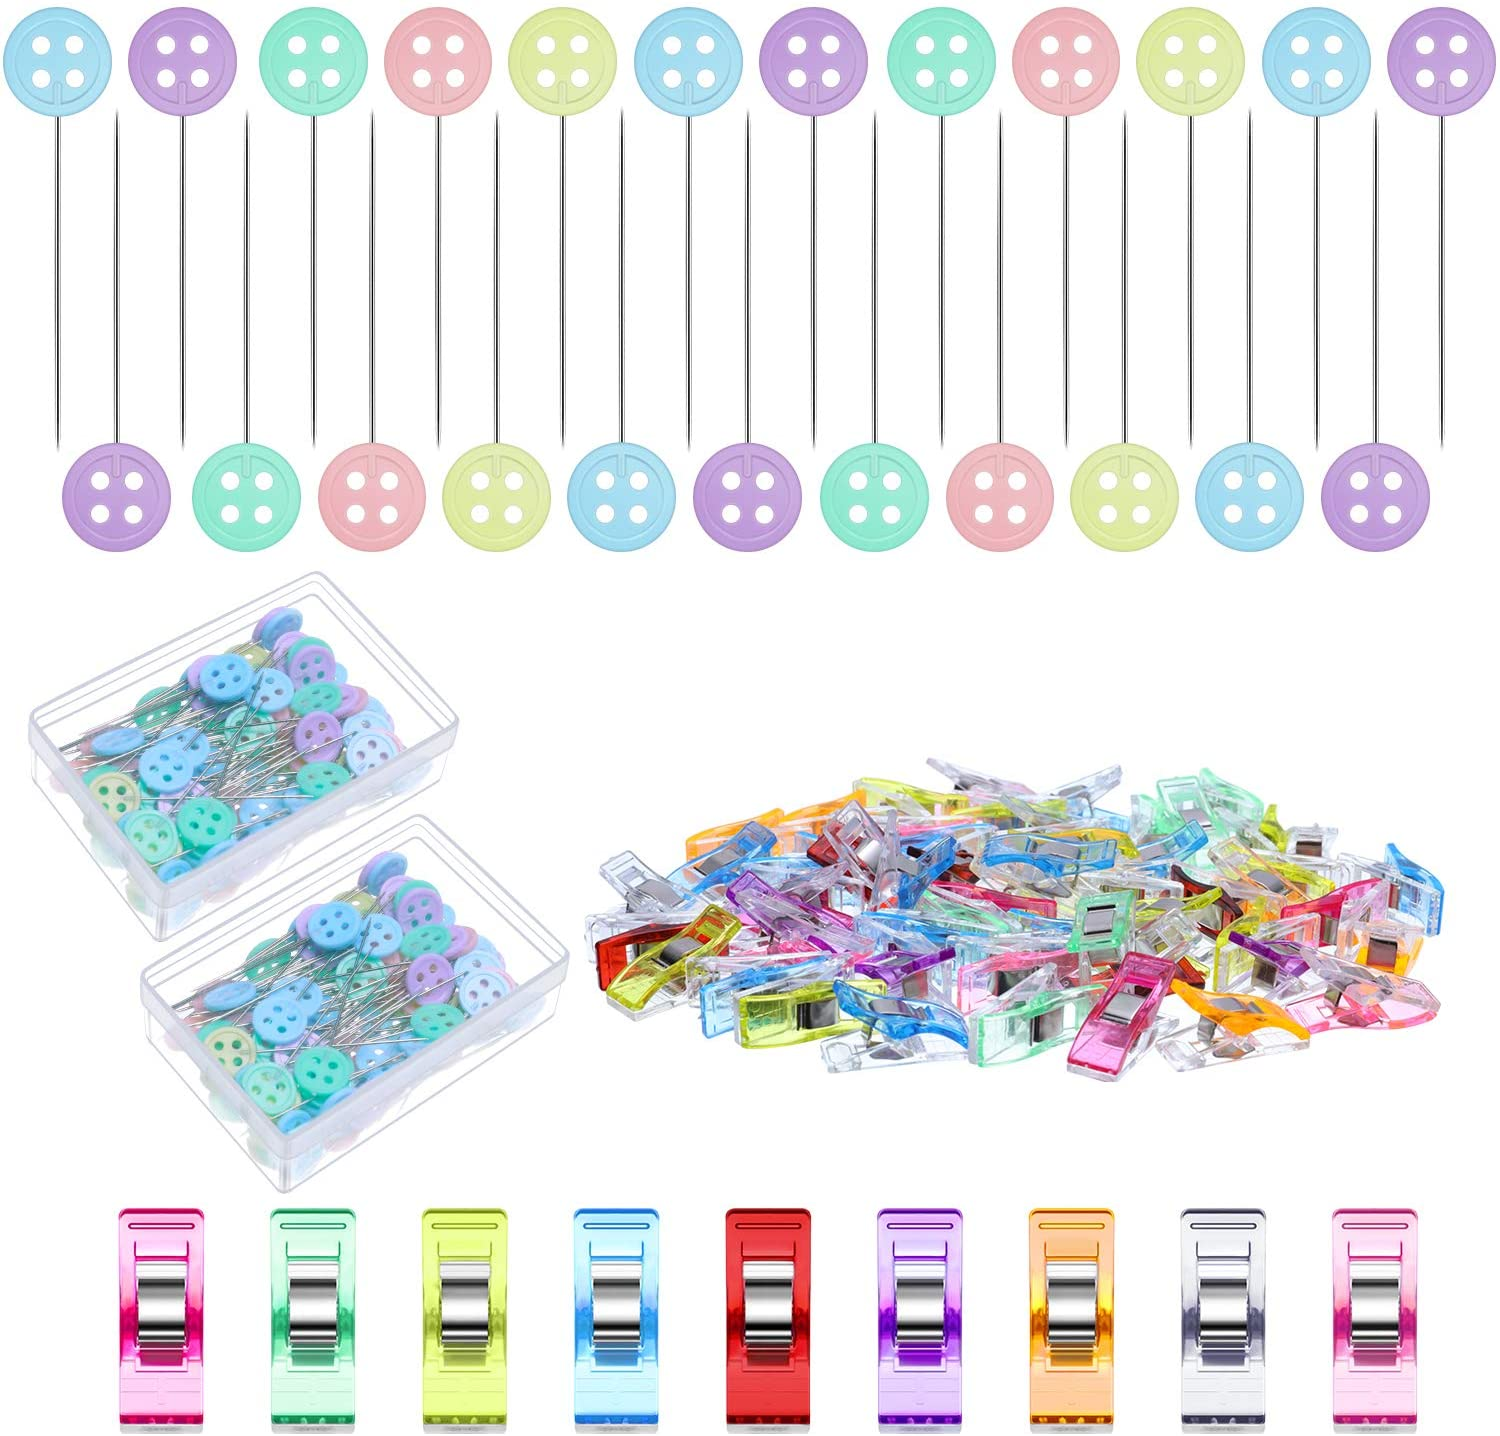 200 Pieces Flat Button Head Pins Decorative Straight Pins Quilting Pins Colorful Sewing Pins with 50 Pieces Multipurpose Sewing Clips Colored Quilting Clips for Fabric Dressmaking Sewing DIY Crafts